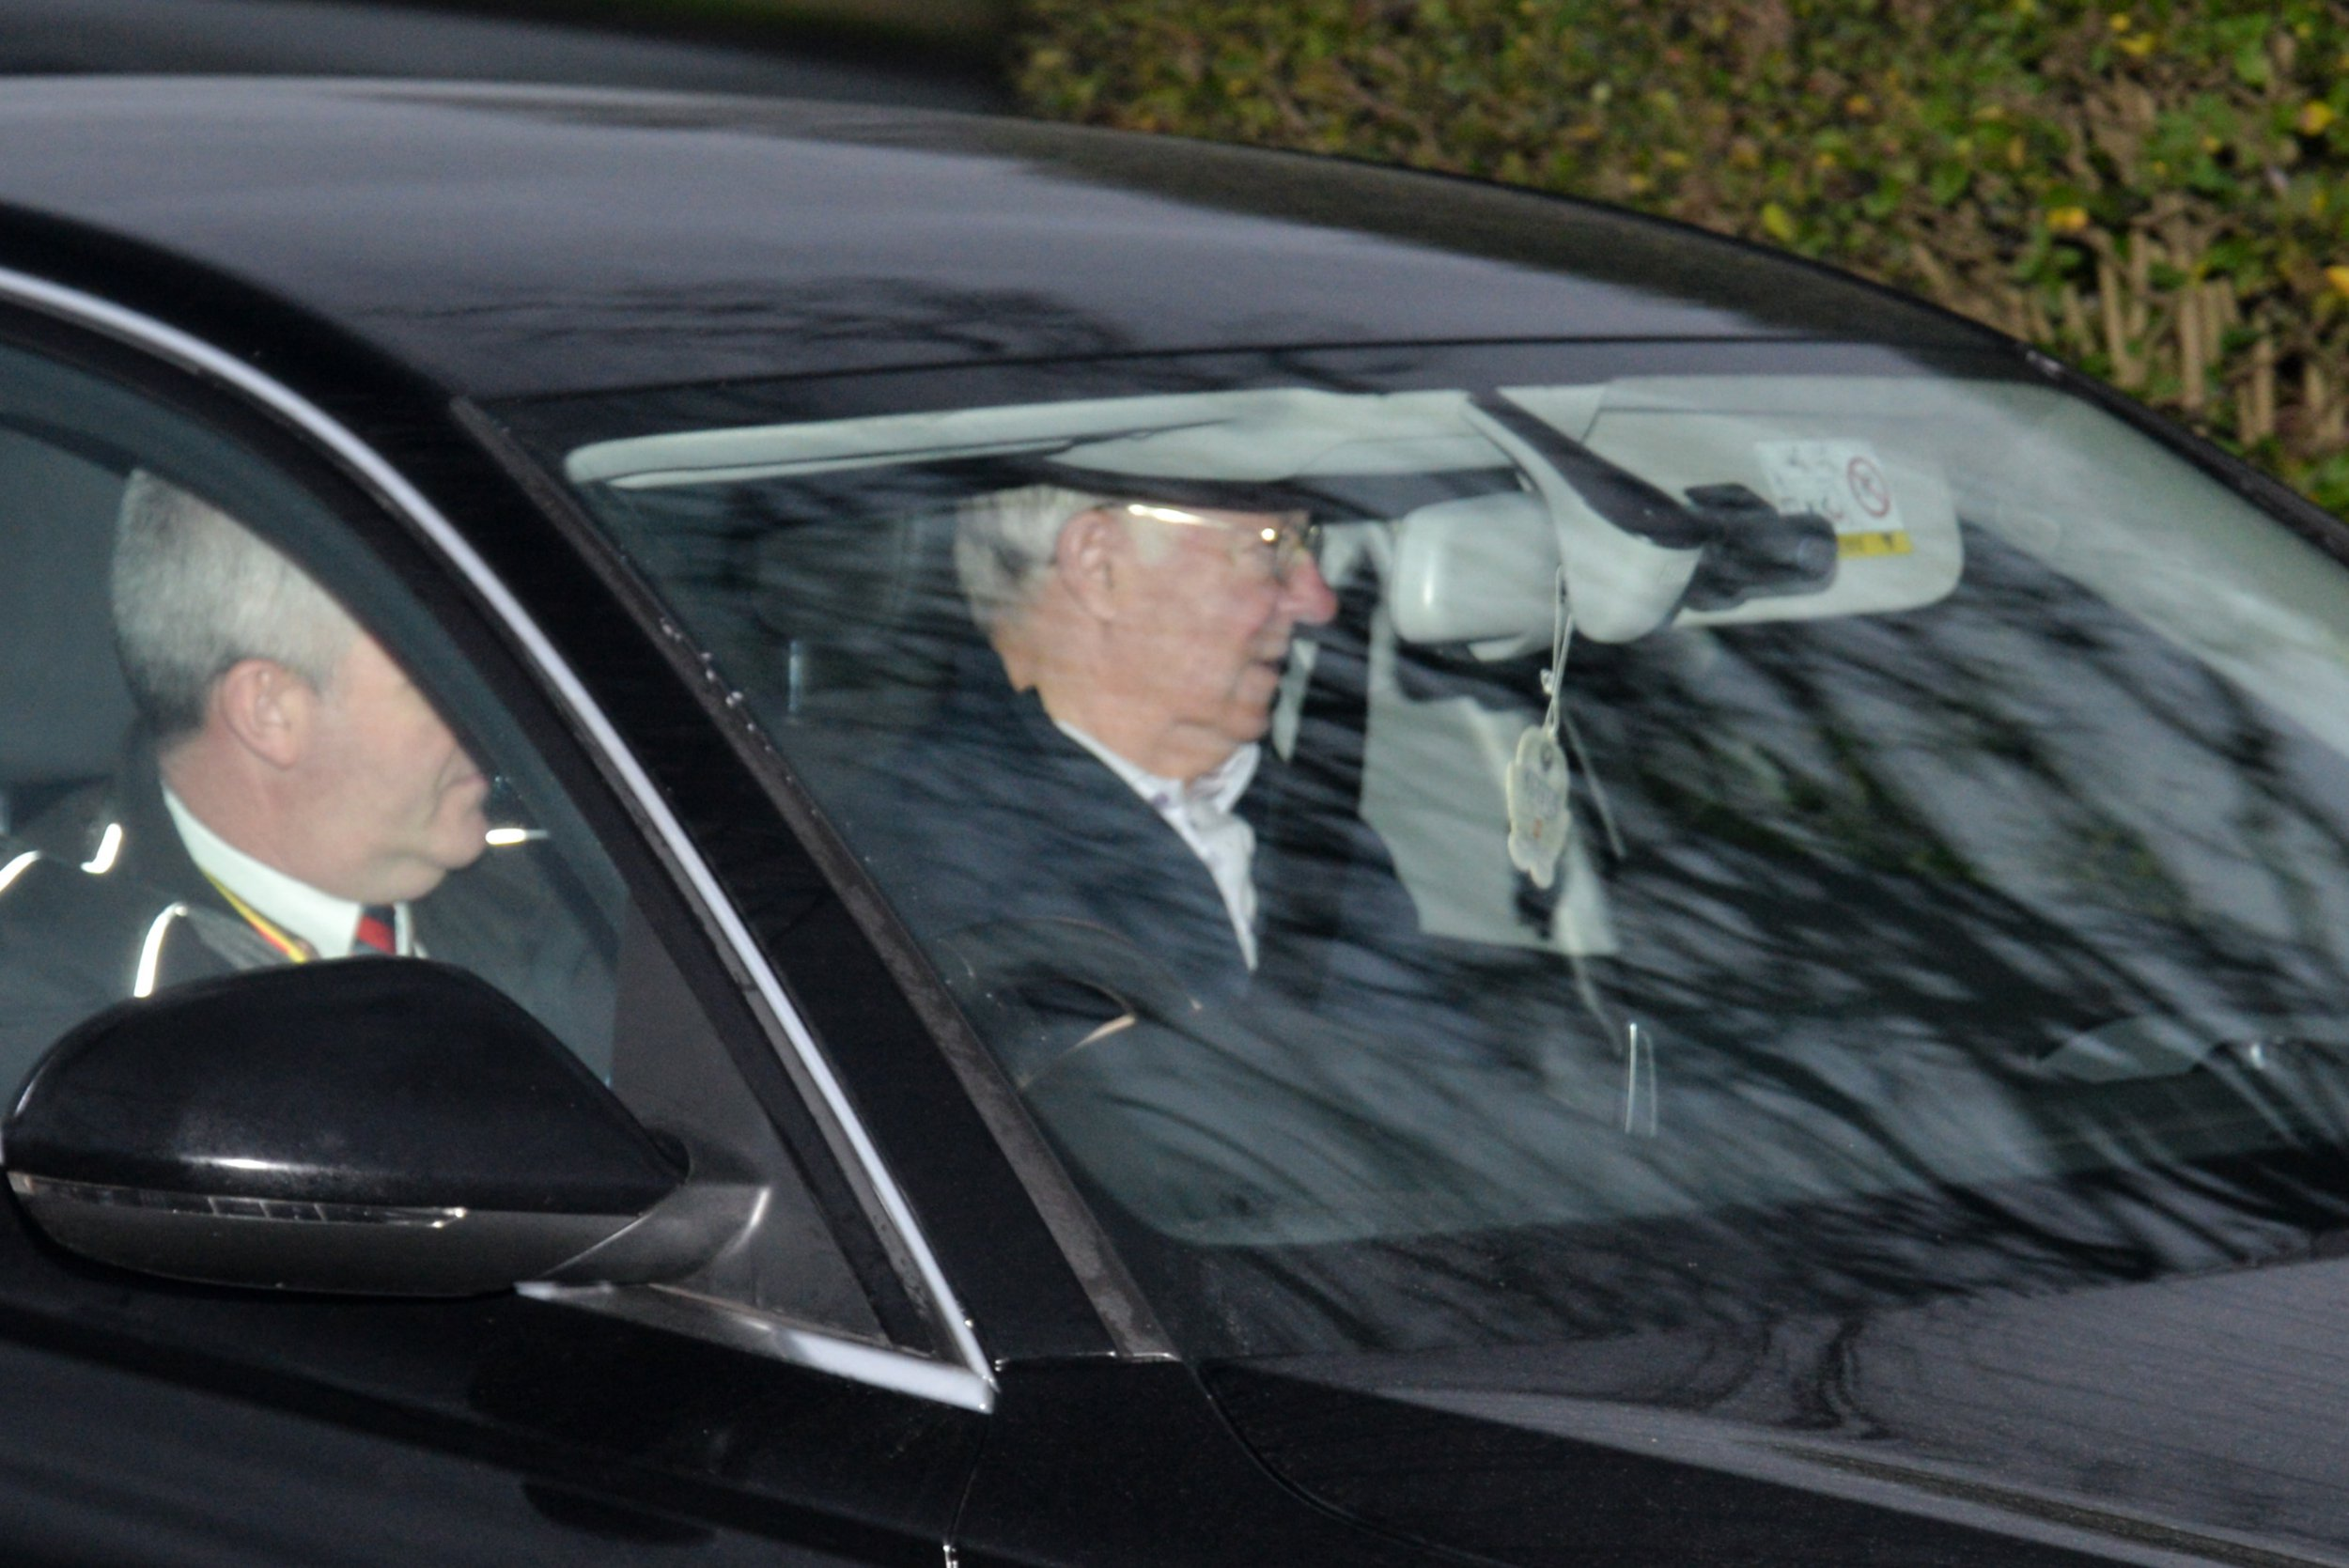 Sir Alex Ferguson being driven to Manchester United's AON training complex in Carrington ahead of their crucial EPL game against Tottenham tomorrow (Sunday) at Wembley. Saturday 12th January 2019